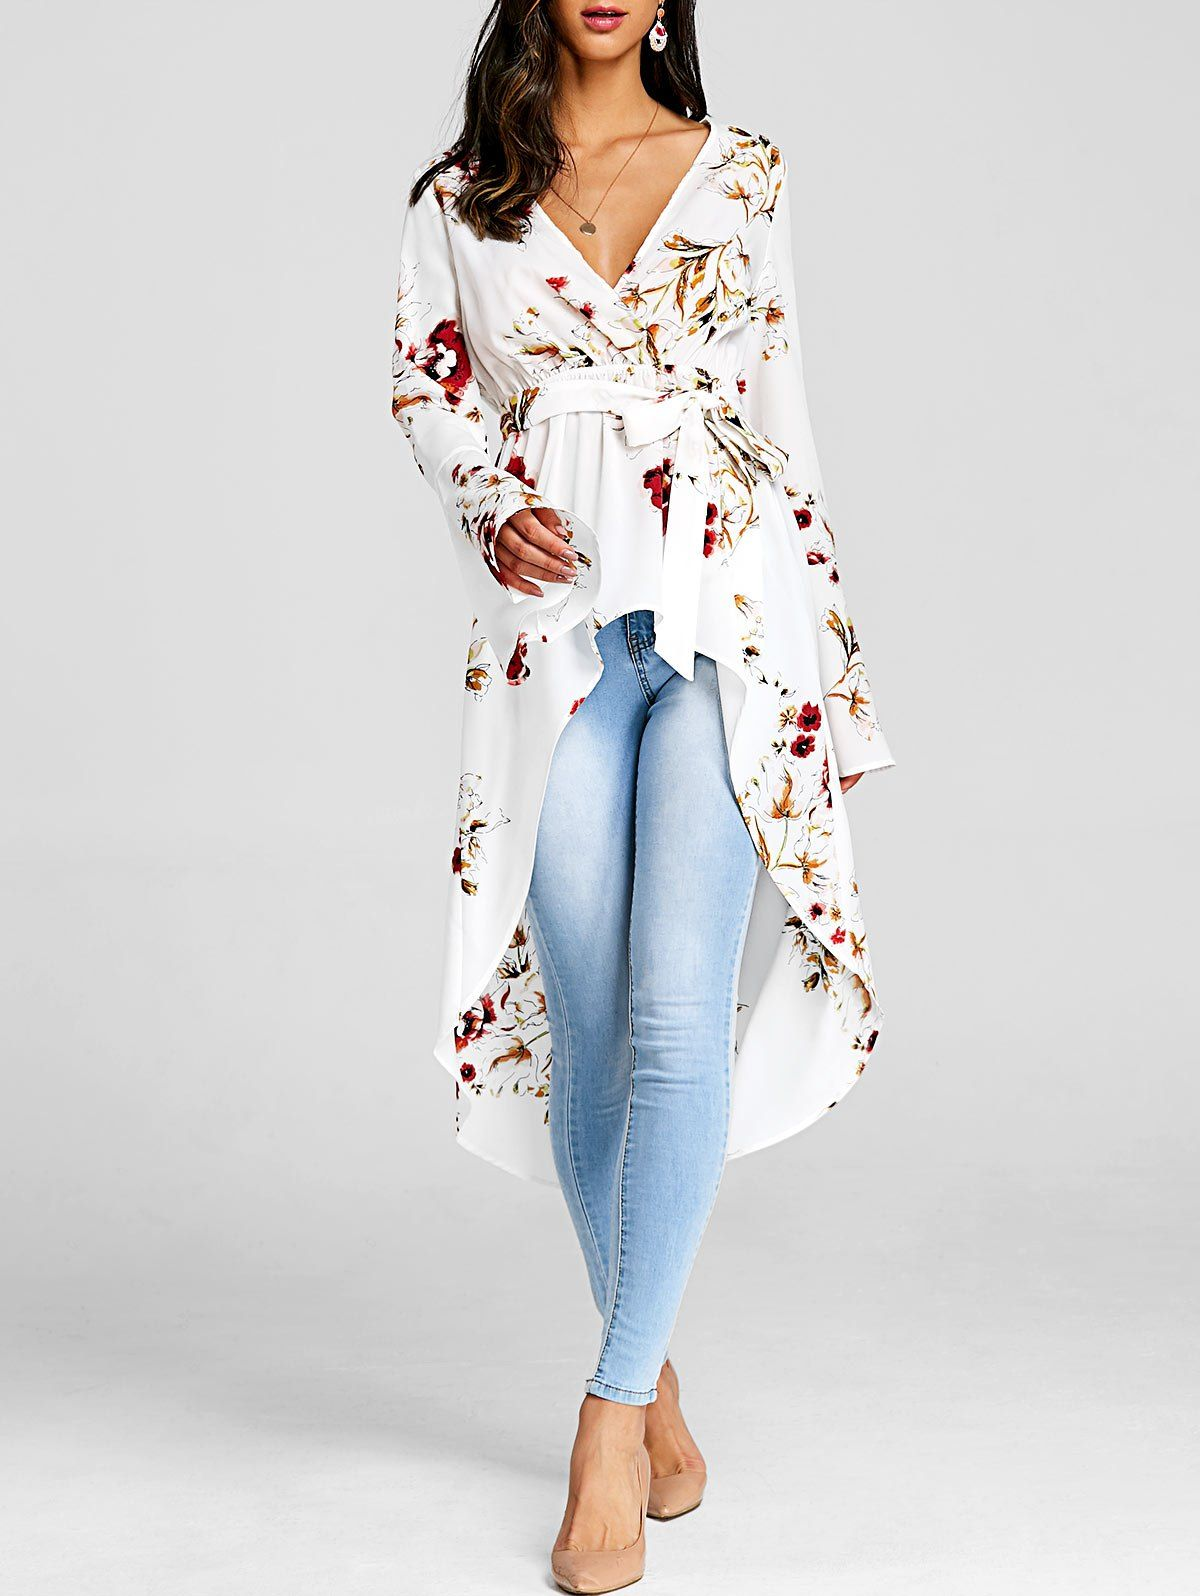 ba886f9e25 Cheap Fashion online retailer providing customers trendy and stylish  clothing including different categories such as dresses, tops, swimwear.